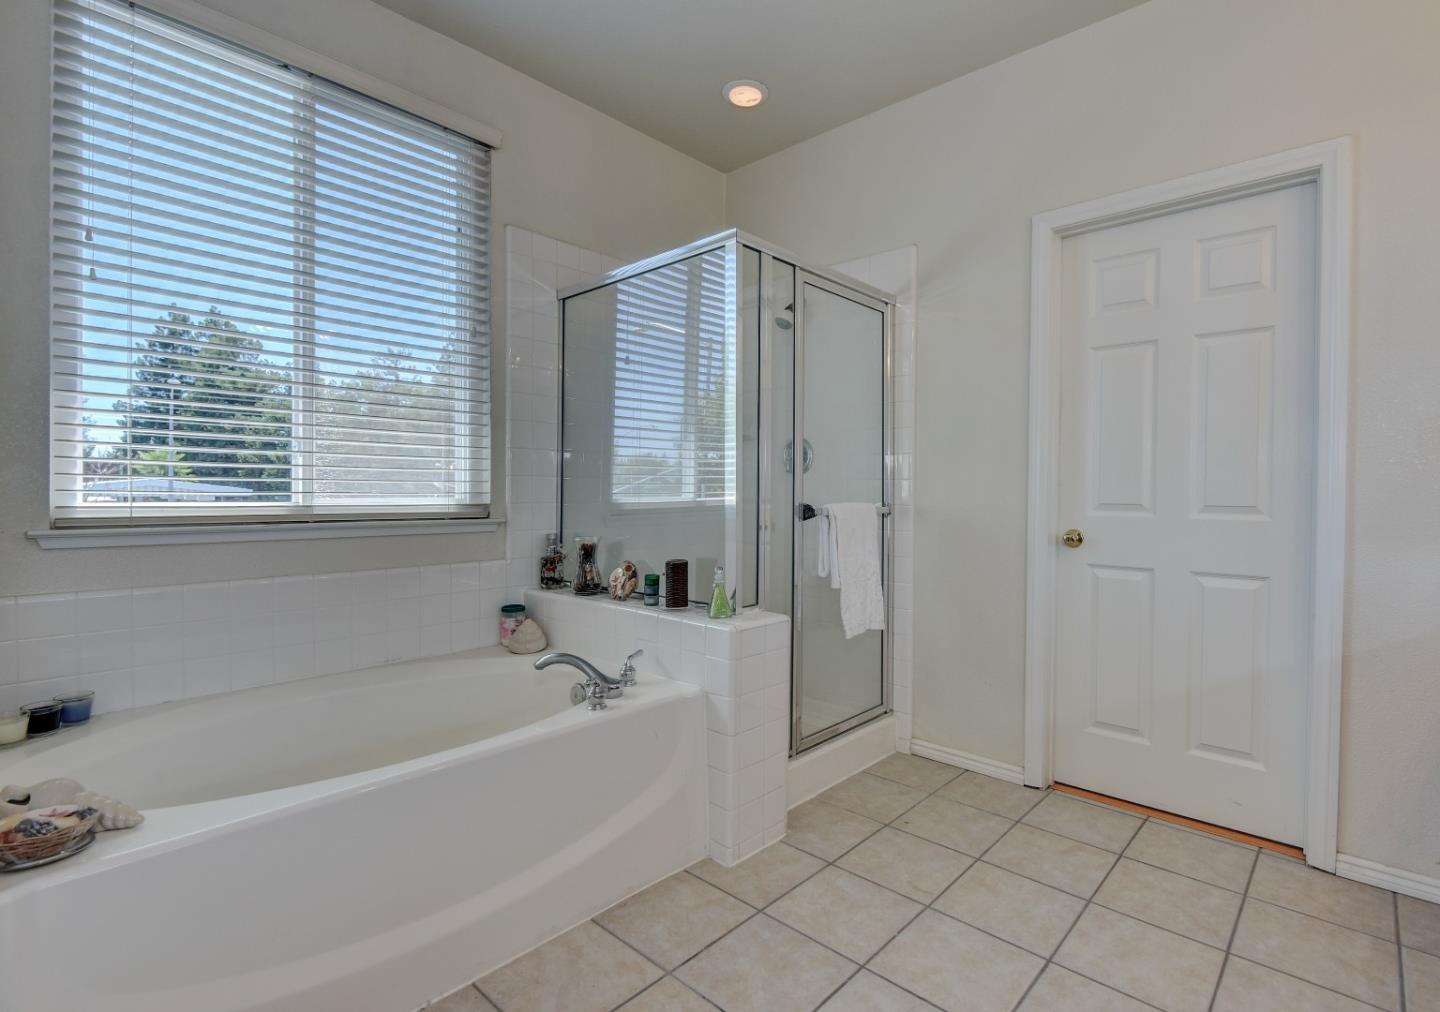 Additional photo for property listing at 2002 Gammell Brown Place  Santa Clara, California 95050 United States